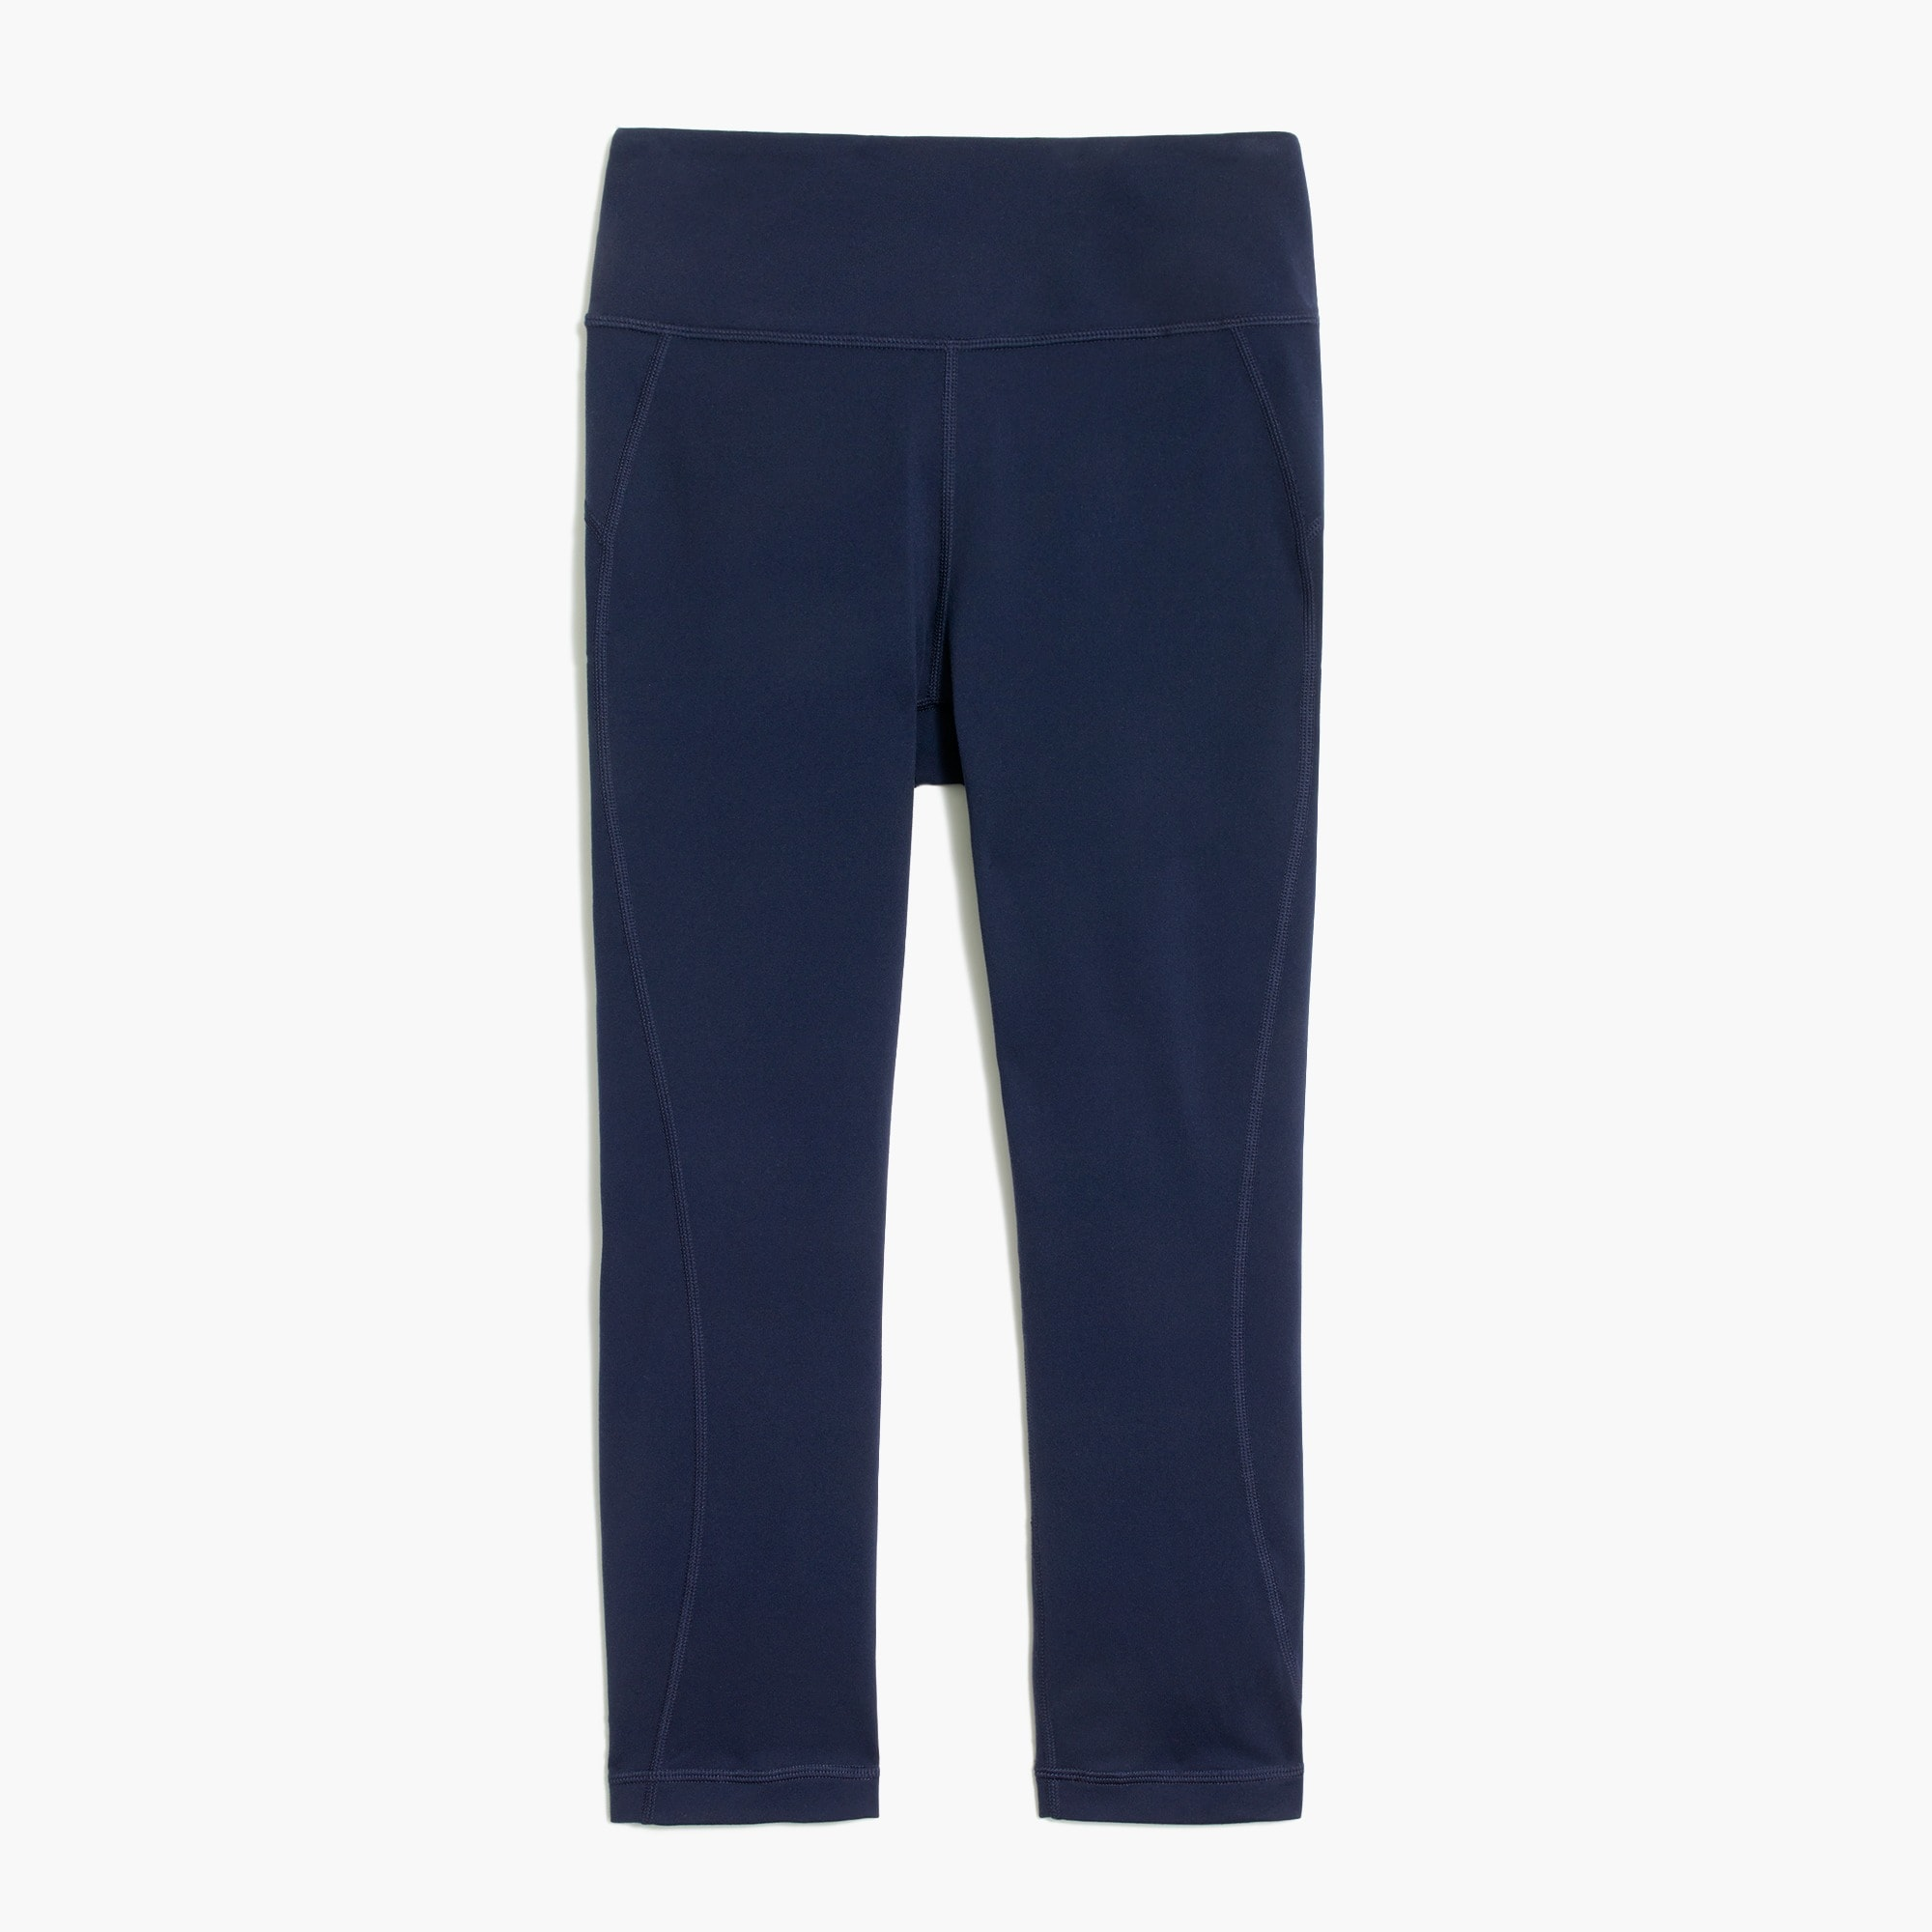 New Balance® for J.Crew high-waisted performance crop leggings